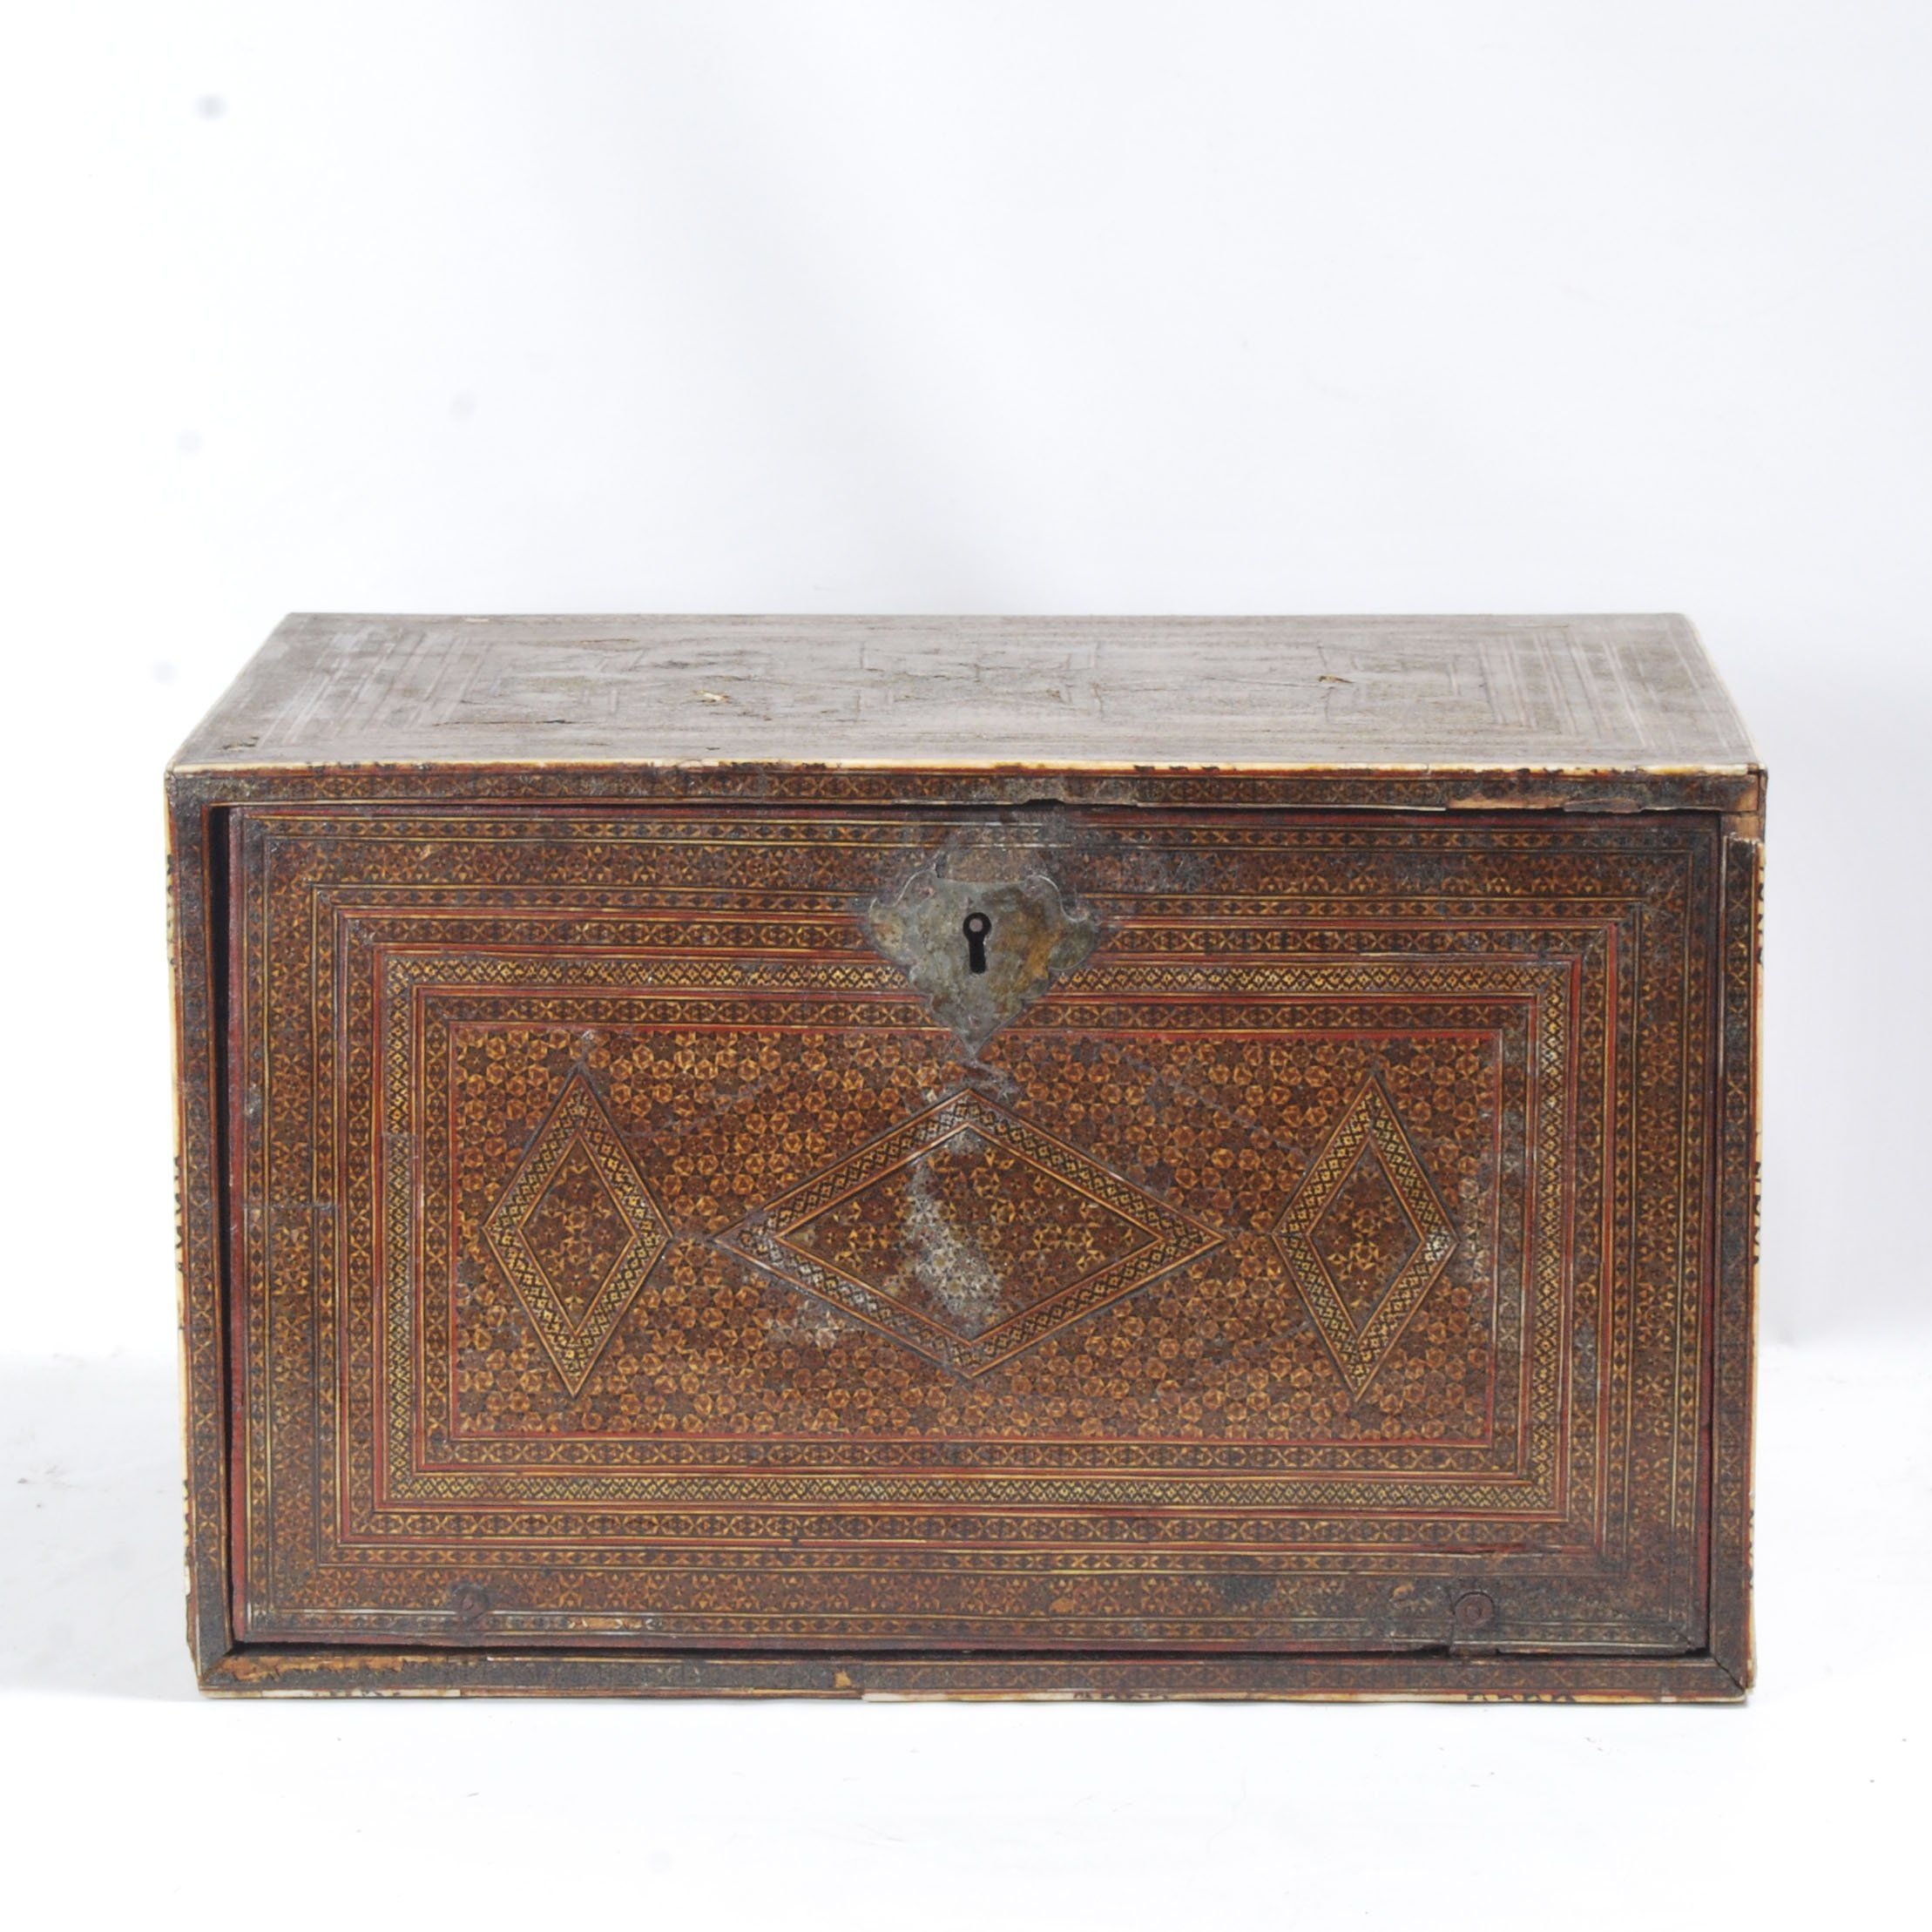 Persian Inlayed Desk Box (With images) Persian